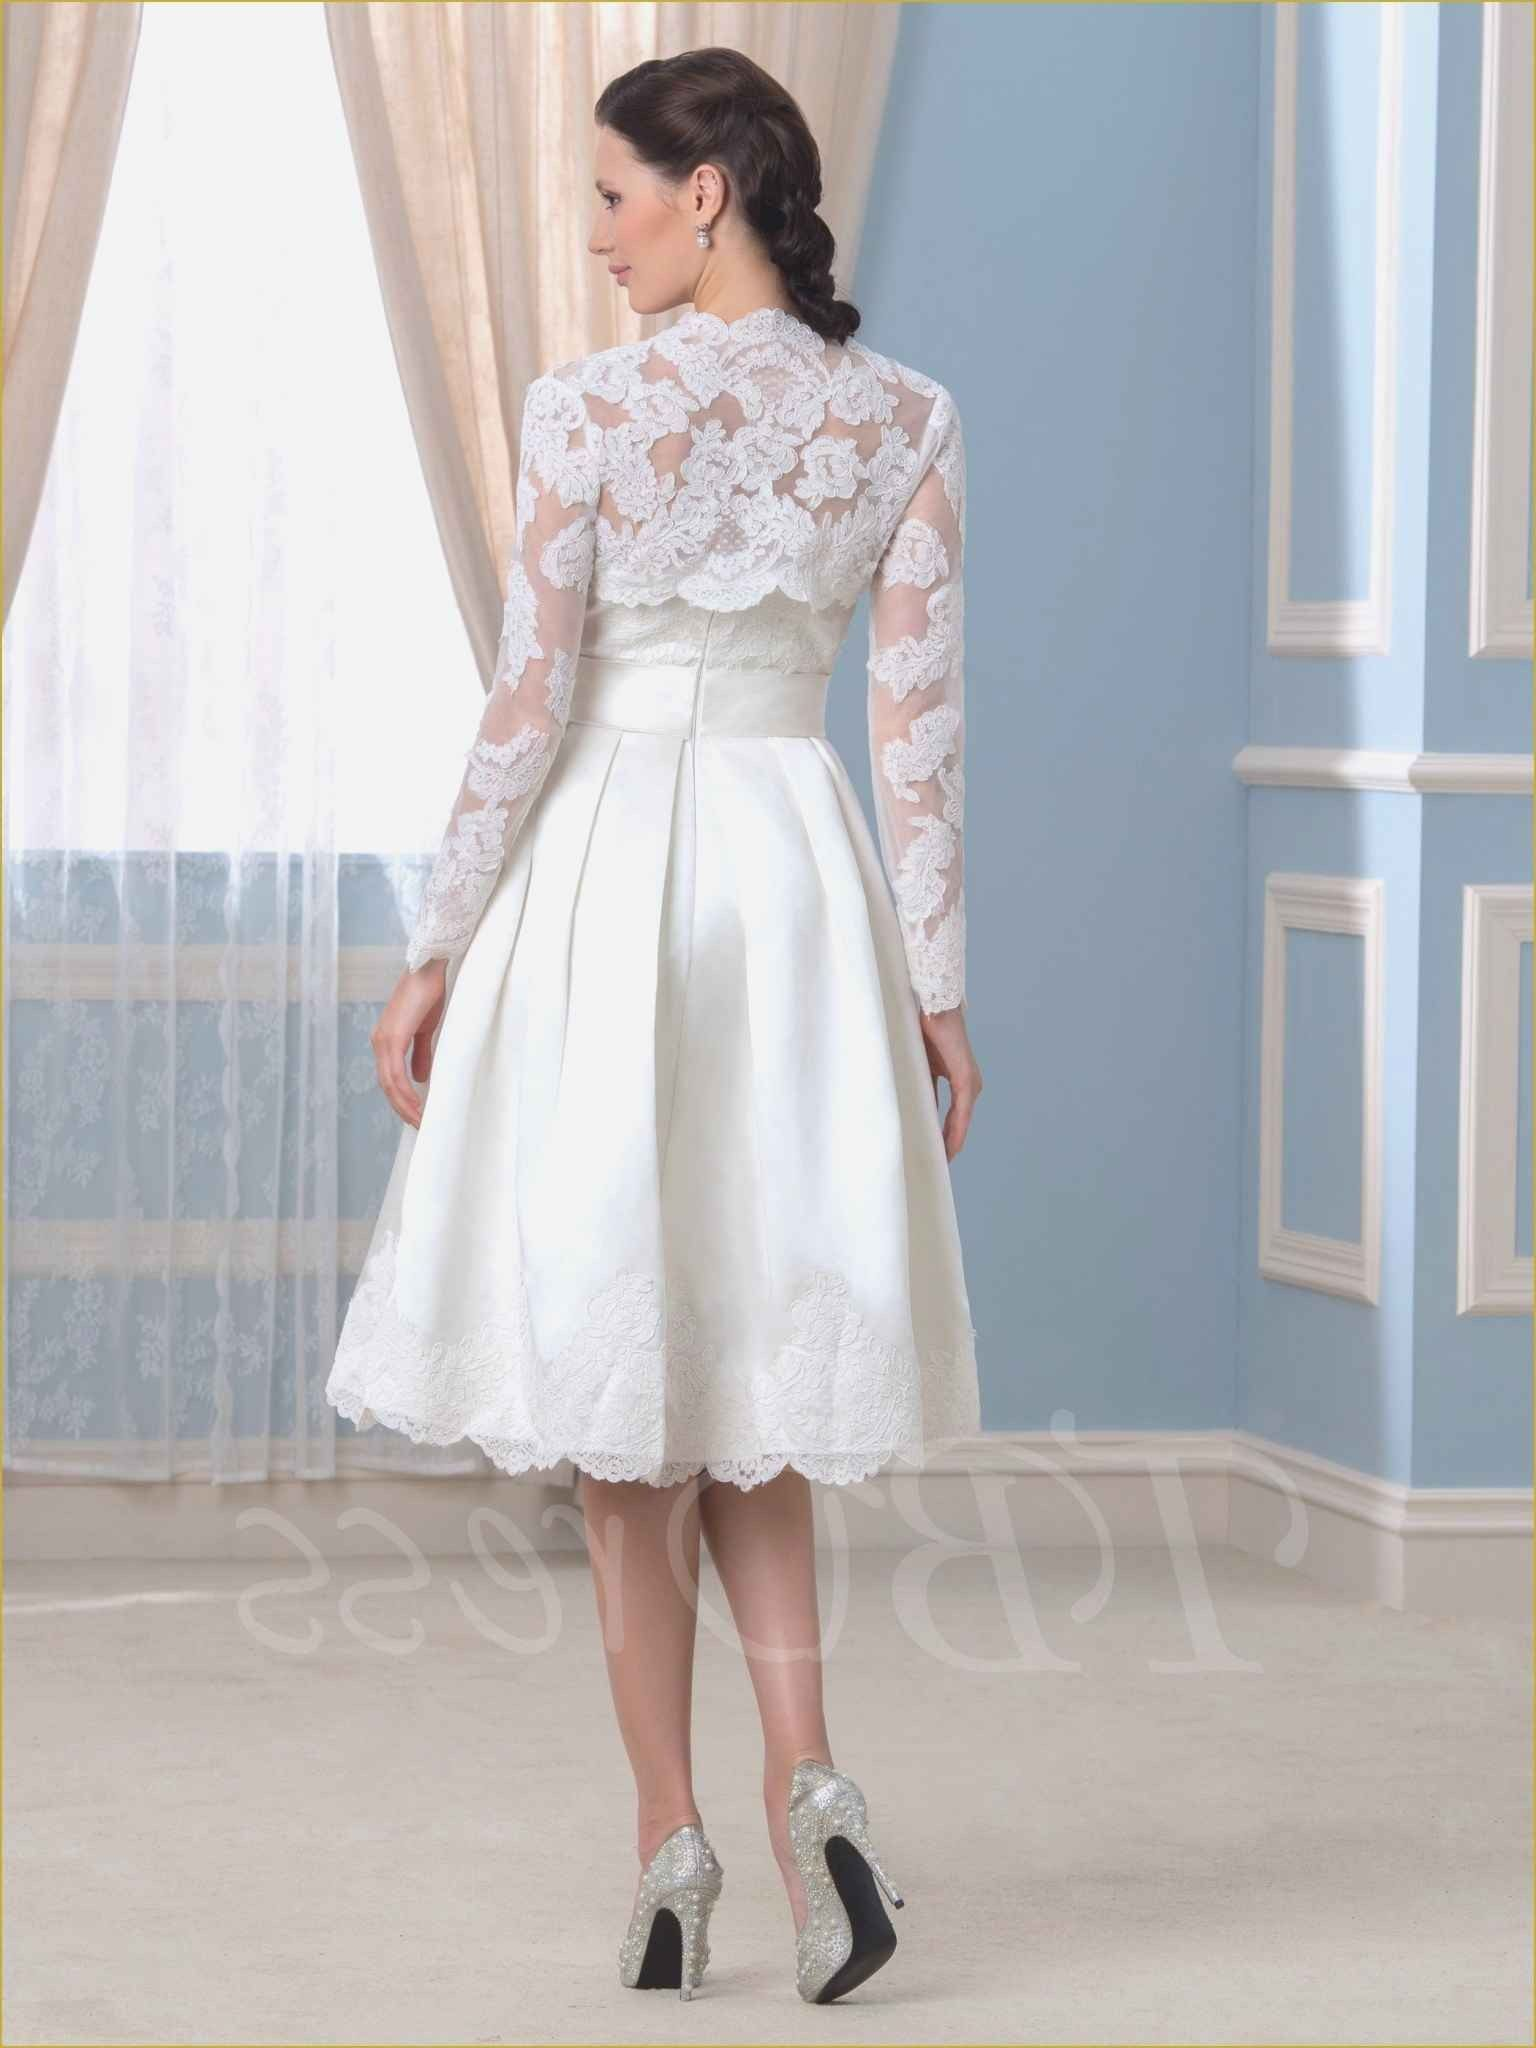 53 Unique Plus Size Dresses To Wear To A Fall Wedding Graphi 53 Unique Plus Size Dress In 2020 Tea Length Wedding Dress Plum Wedding Dresses Wedding Dresses Canada